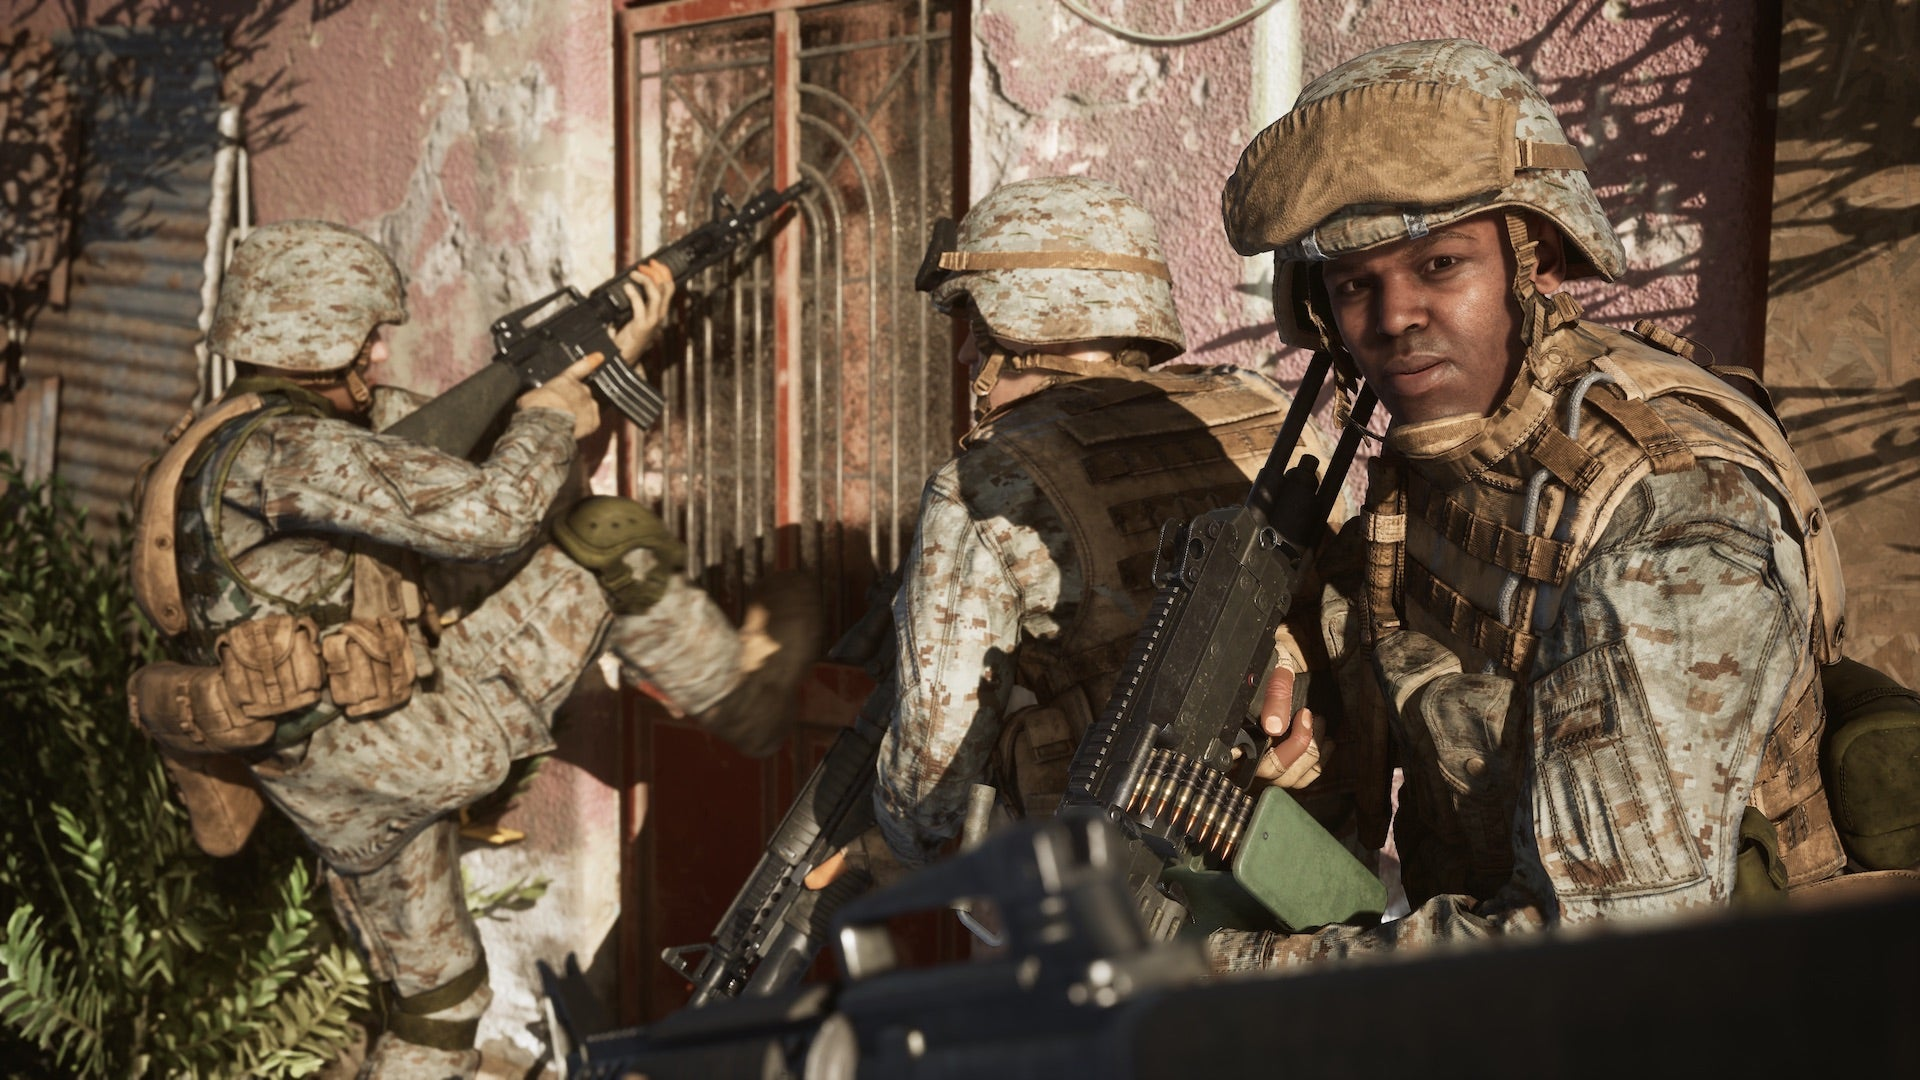 Controversial game 'Six Days In Fallujah' about the bloodiest battle of the Iraq War is back in production